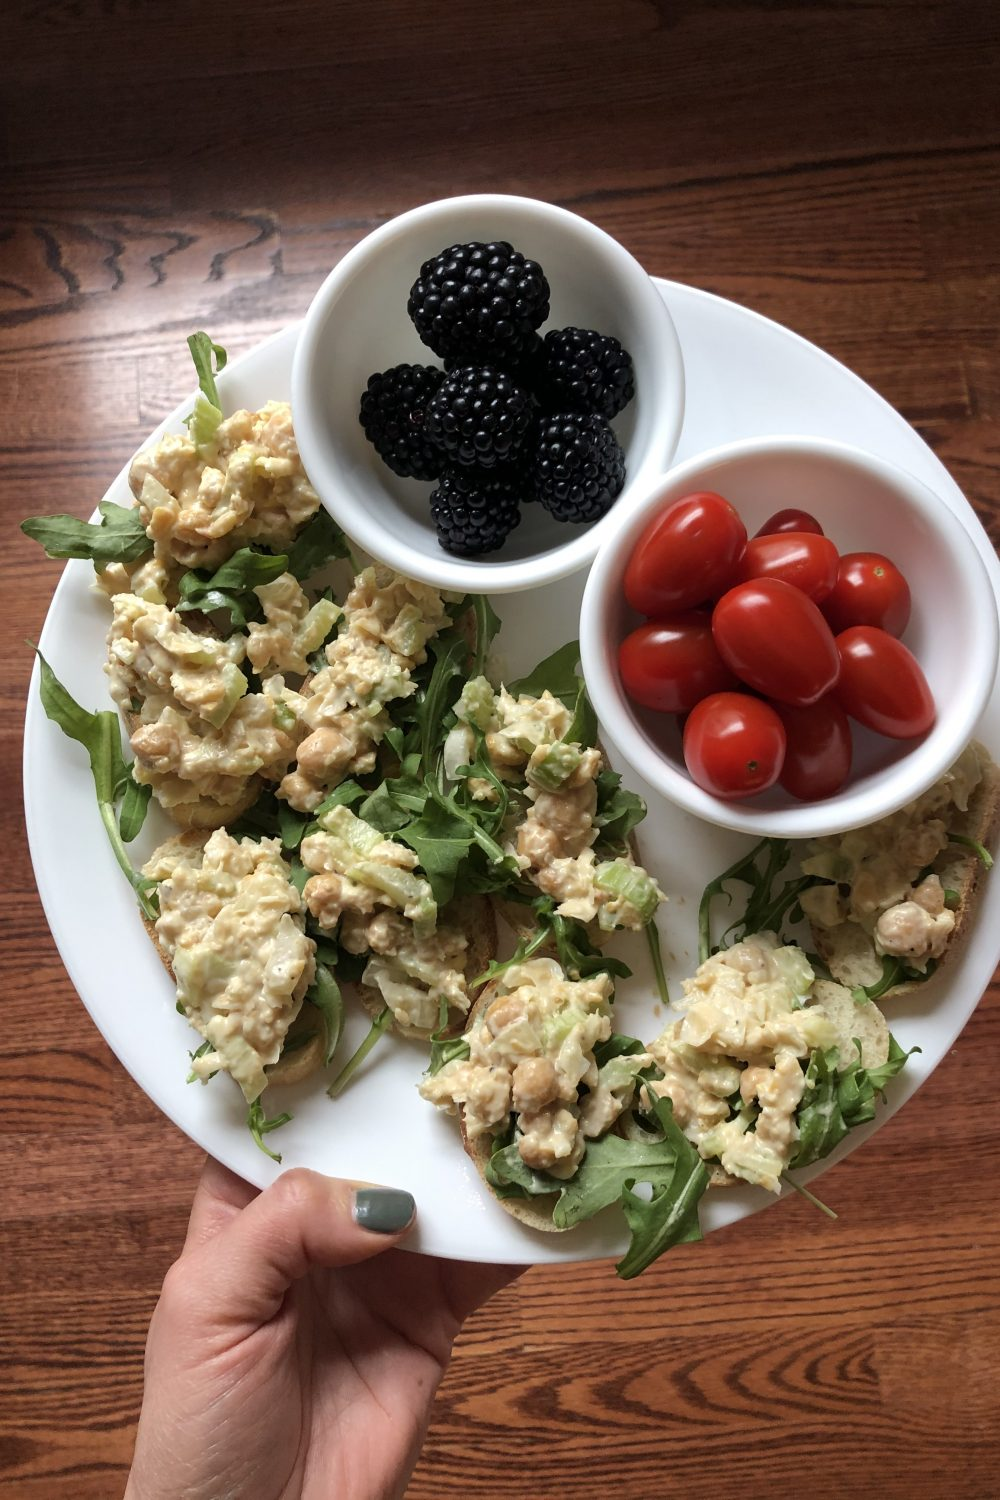 Chickpea salad and arugula on slices of baguette with a side of blackberries and a side of cherry tomatoes